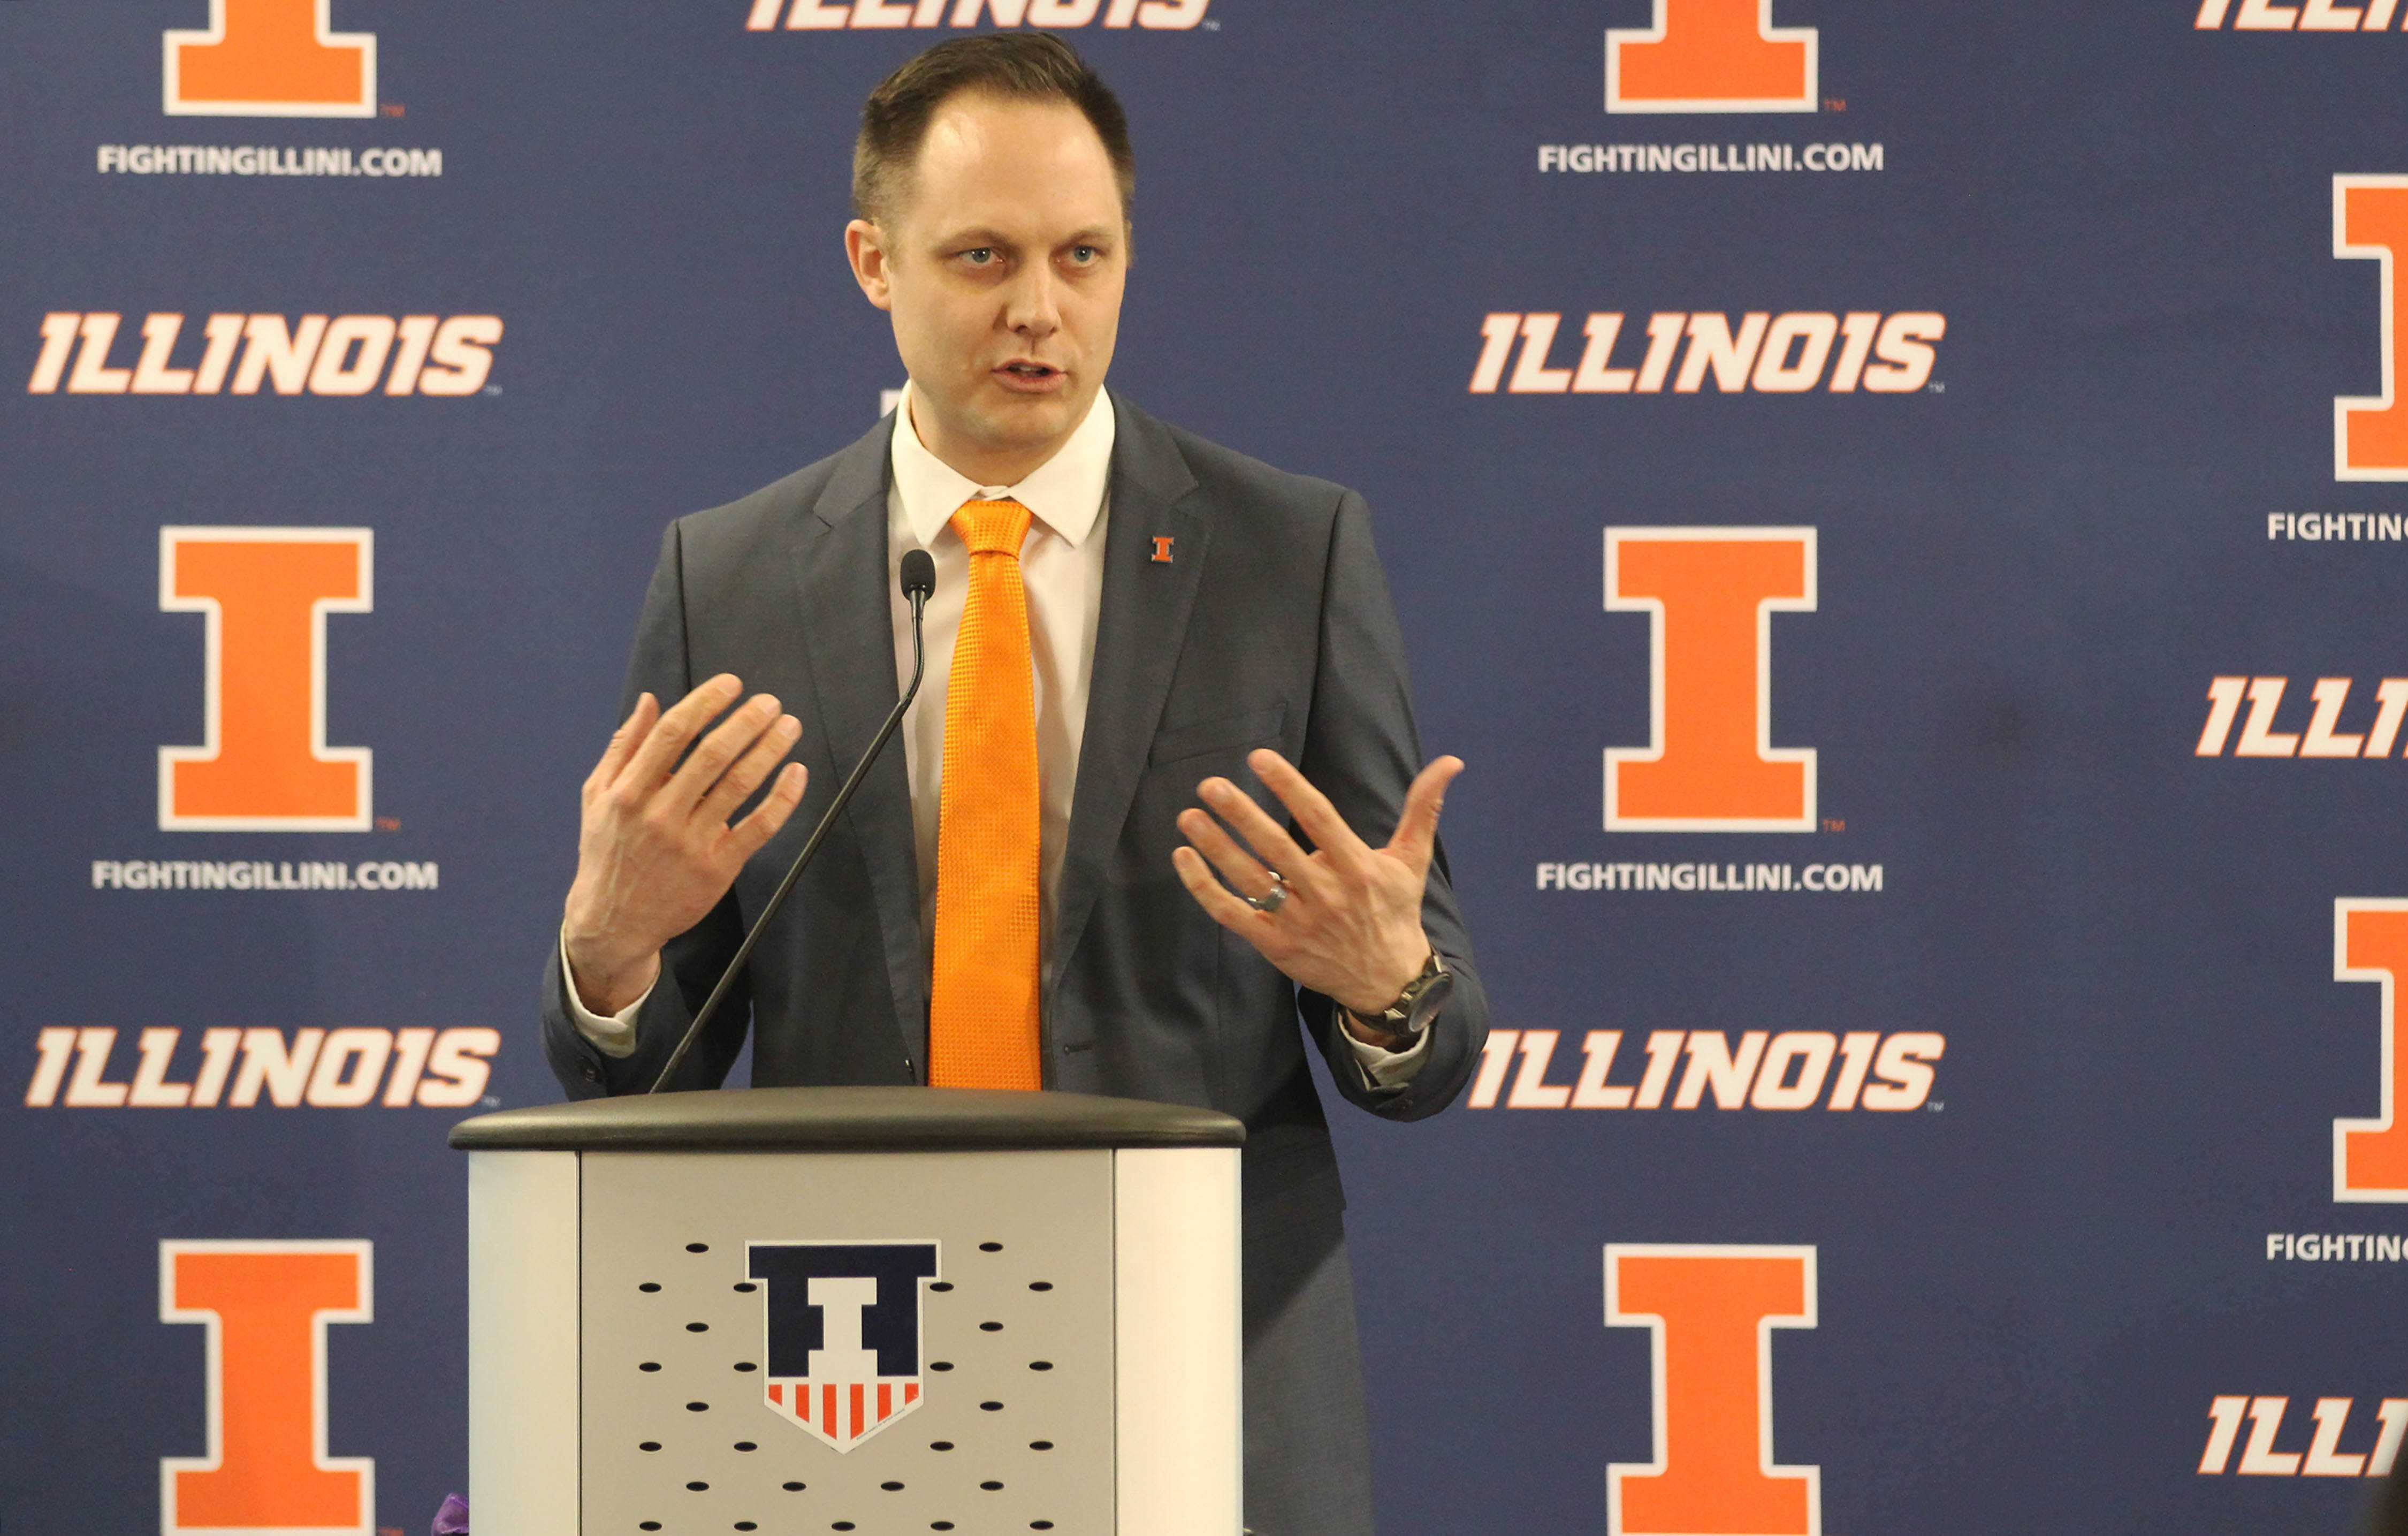 Chris Tamas talks to the press for the first time about being Illinois' new head coach of the Women's Volleyball team at Biefeldt Athletics Administration Building on Friday, Feb. 10.